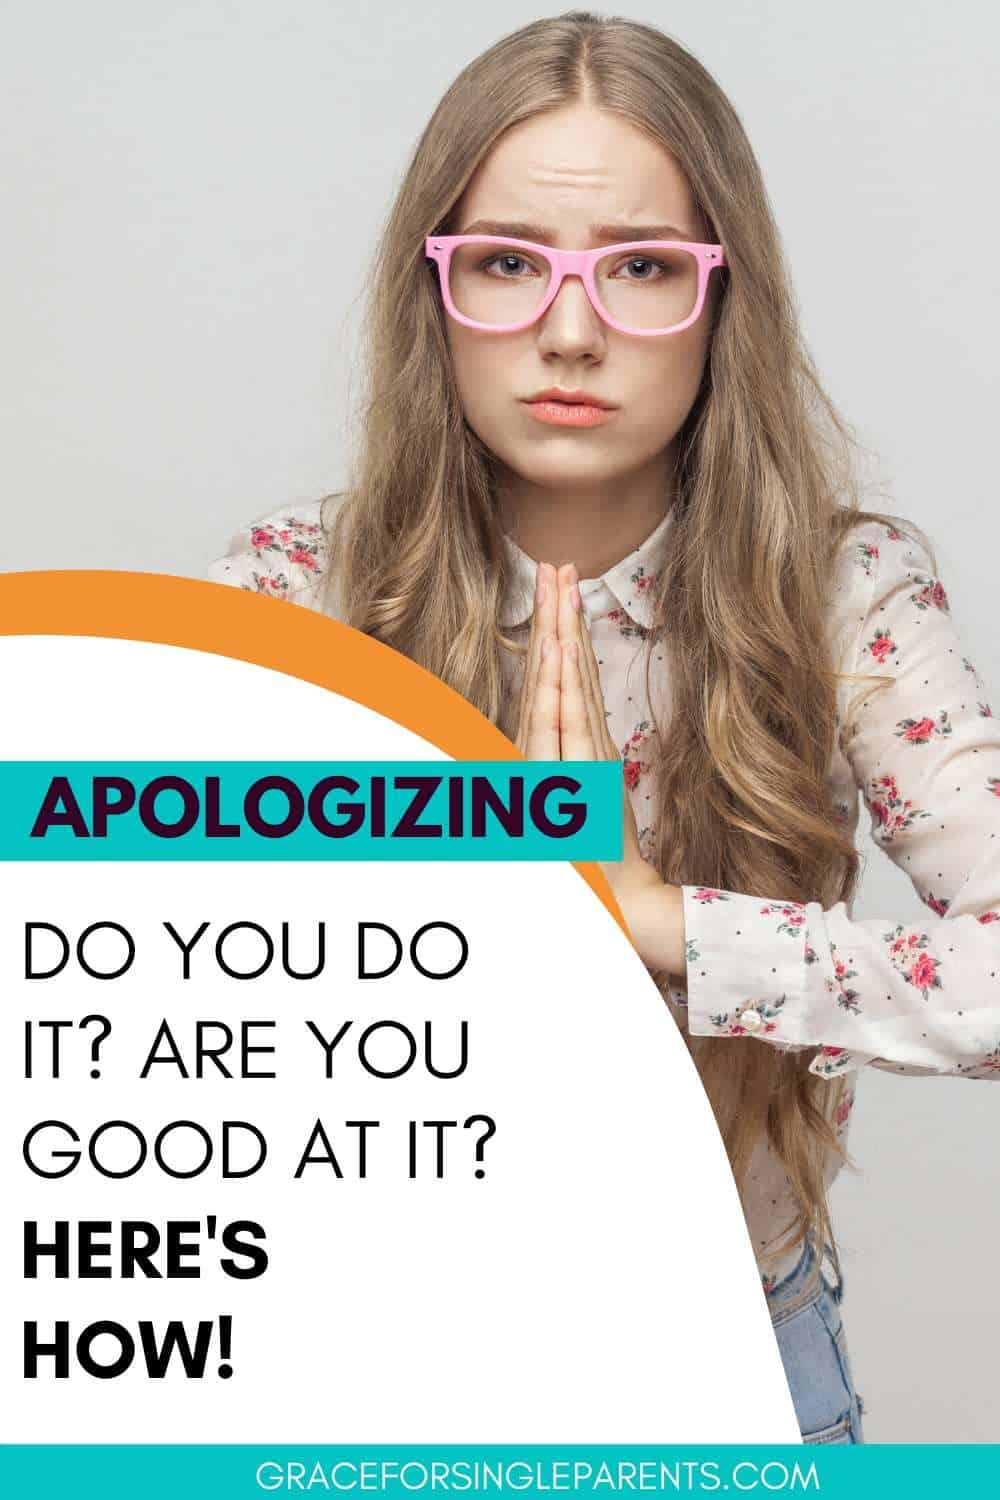 Apologizing: Do you do it? Are you good at it?